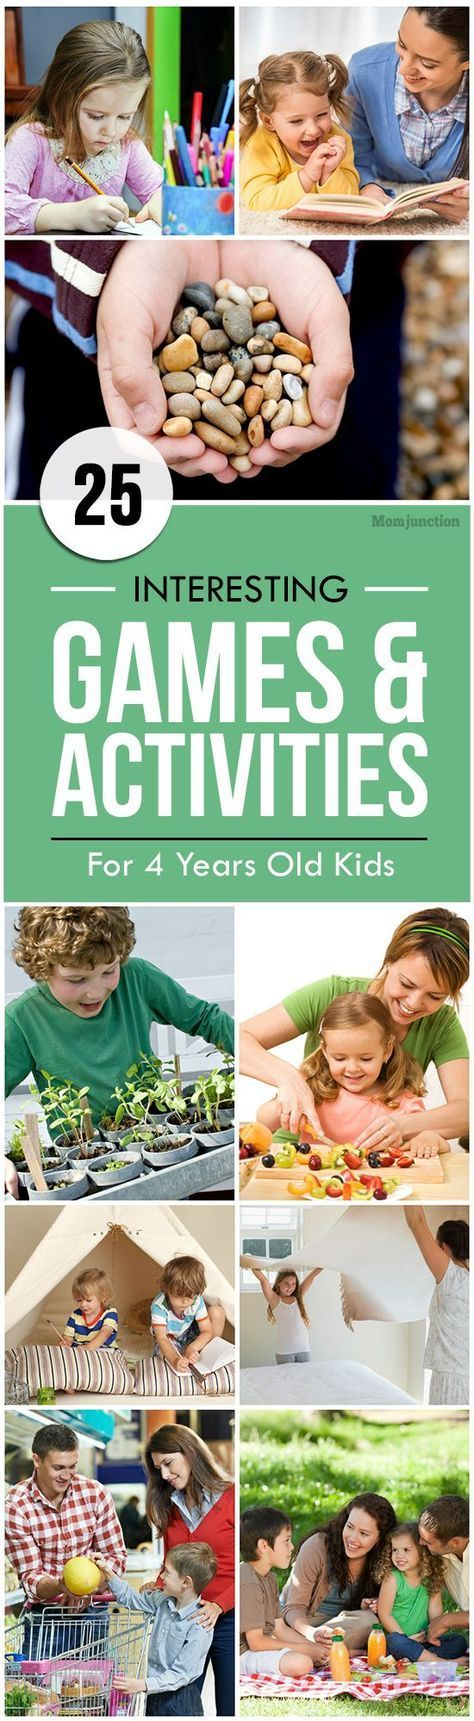 17 Captivating And Enjoyable Games For 4-Year-Olds #kids #fun